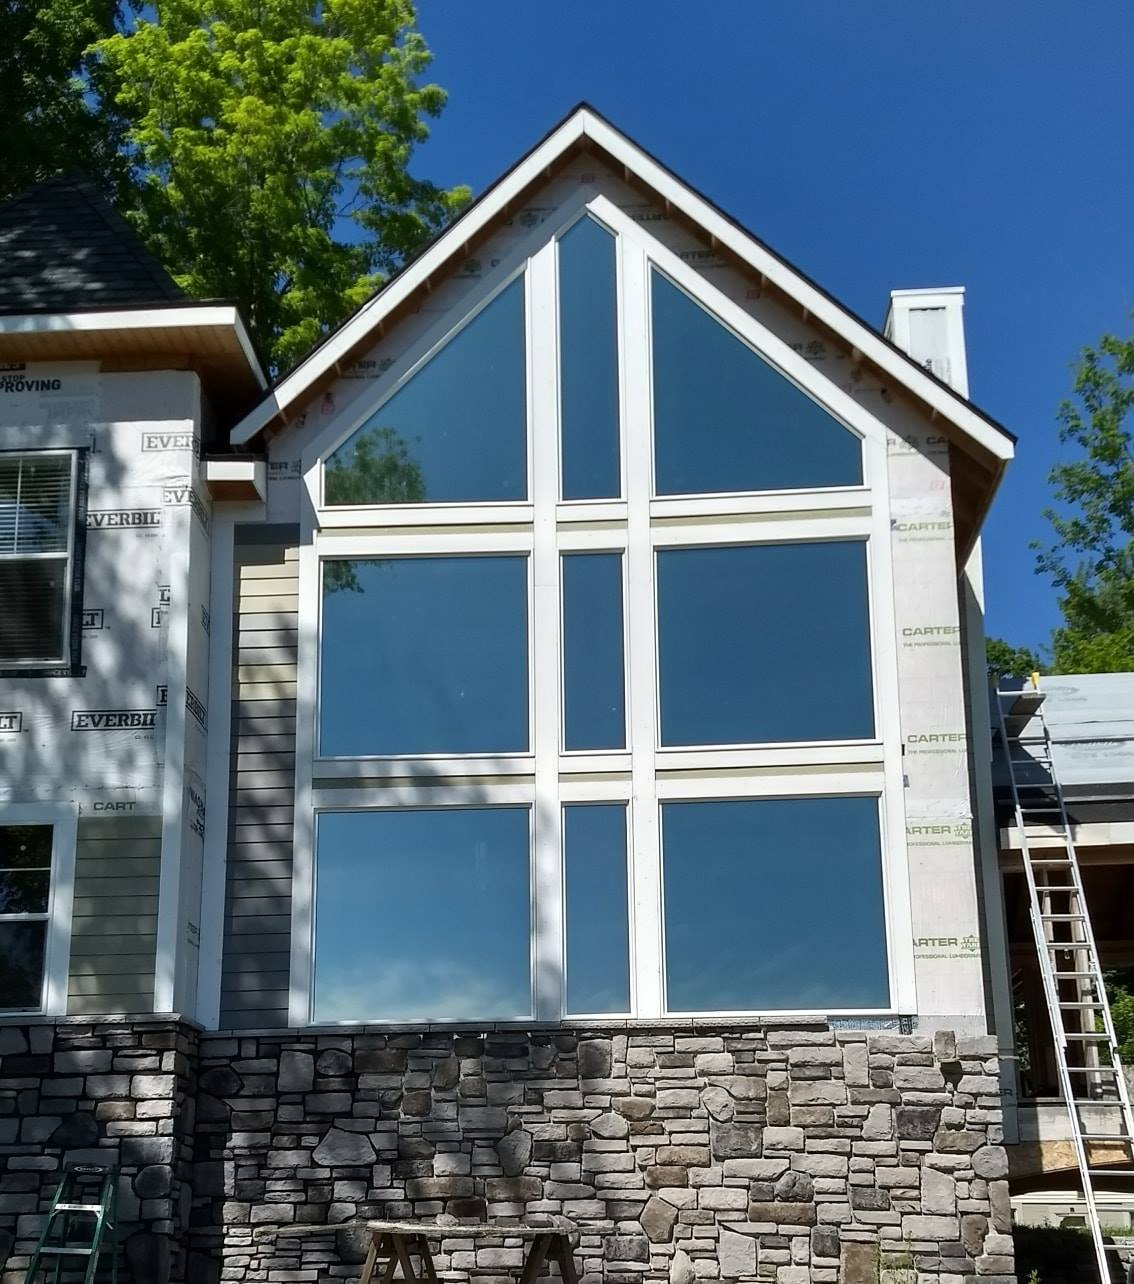 Vista V18 Celeste home window tinting in Alger, Michigan. Exterior view.